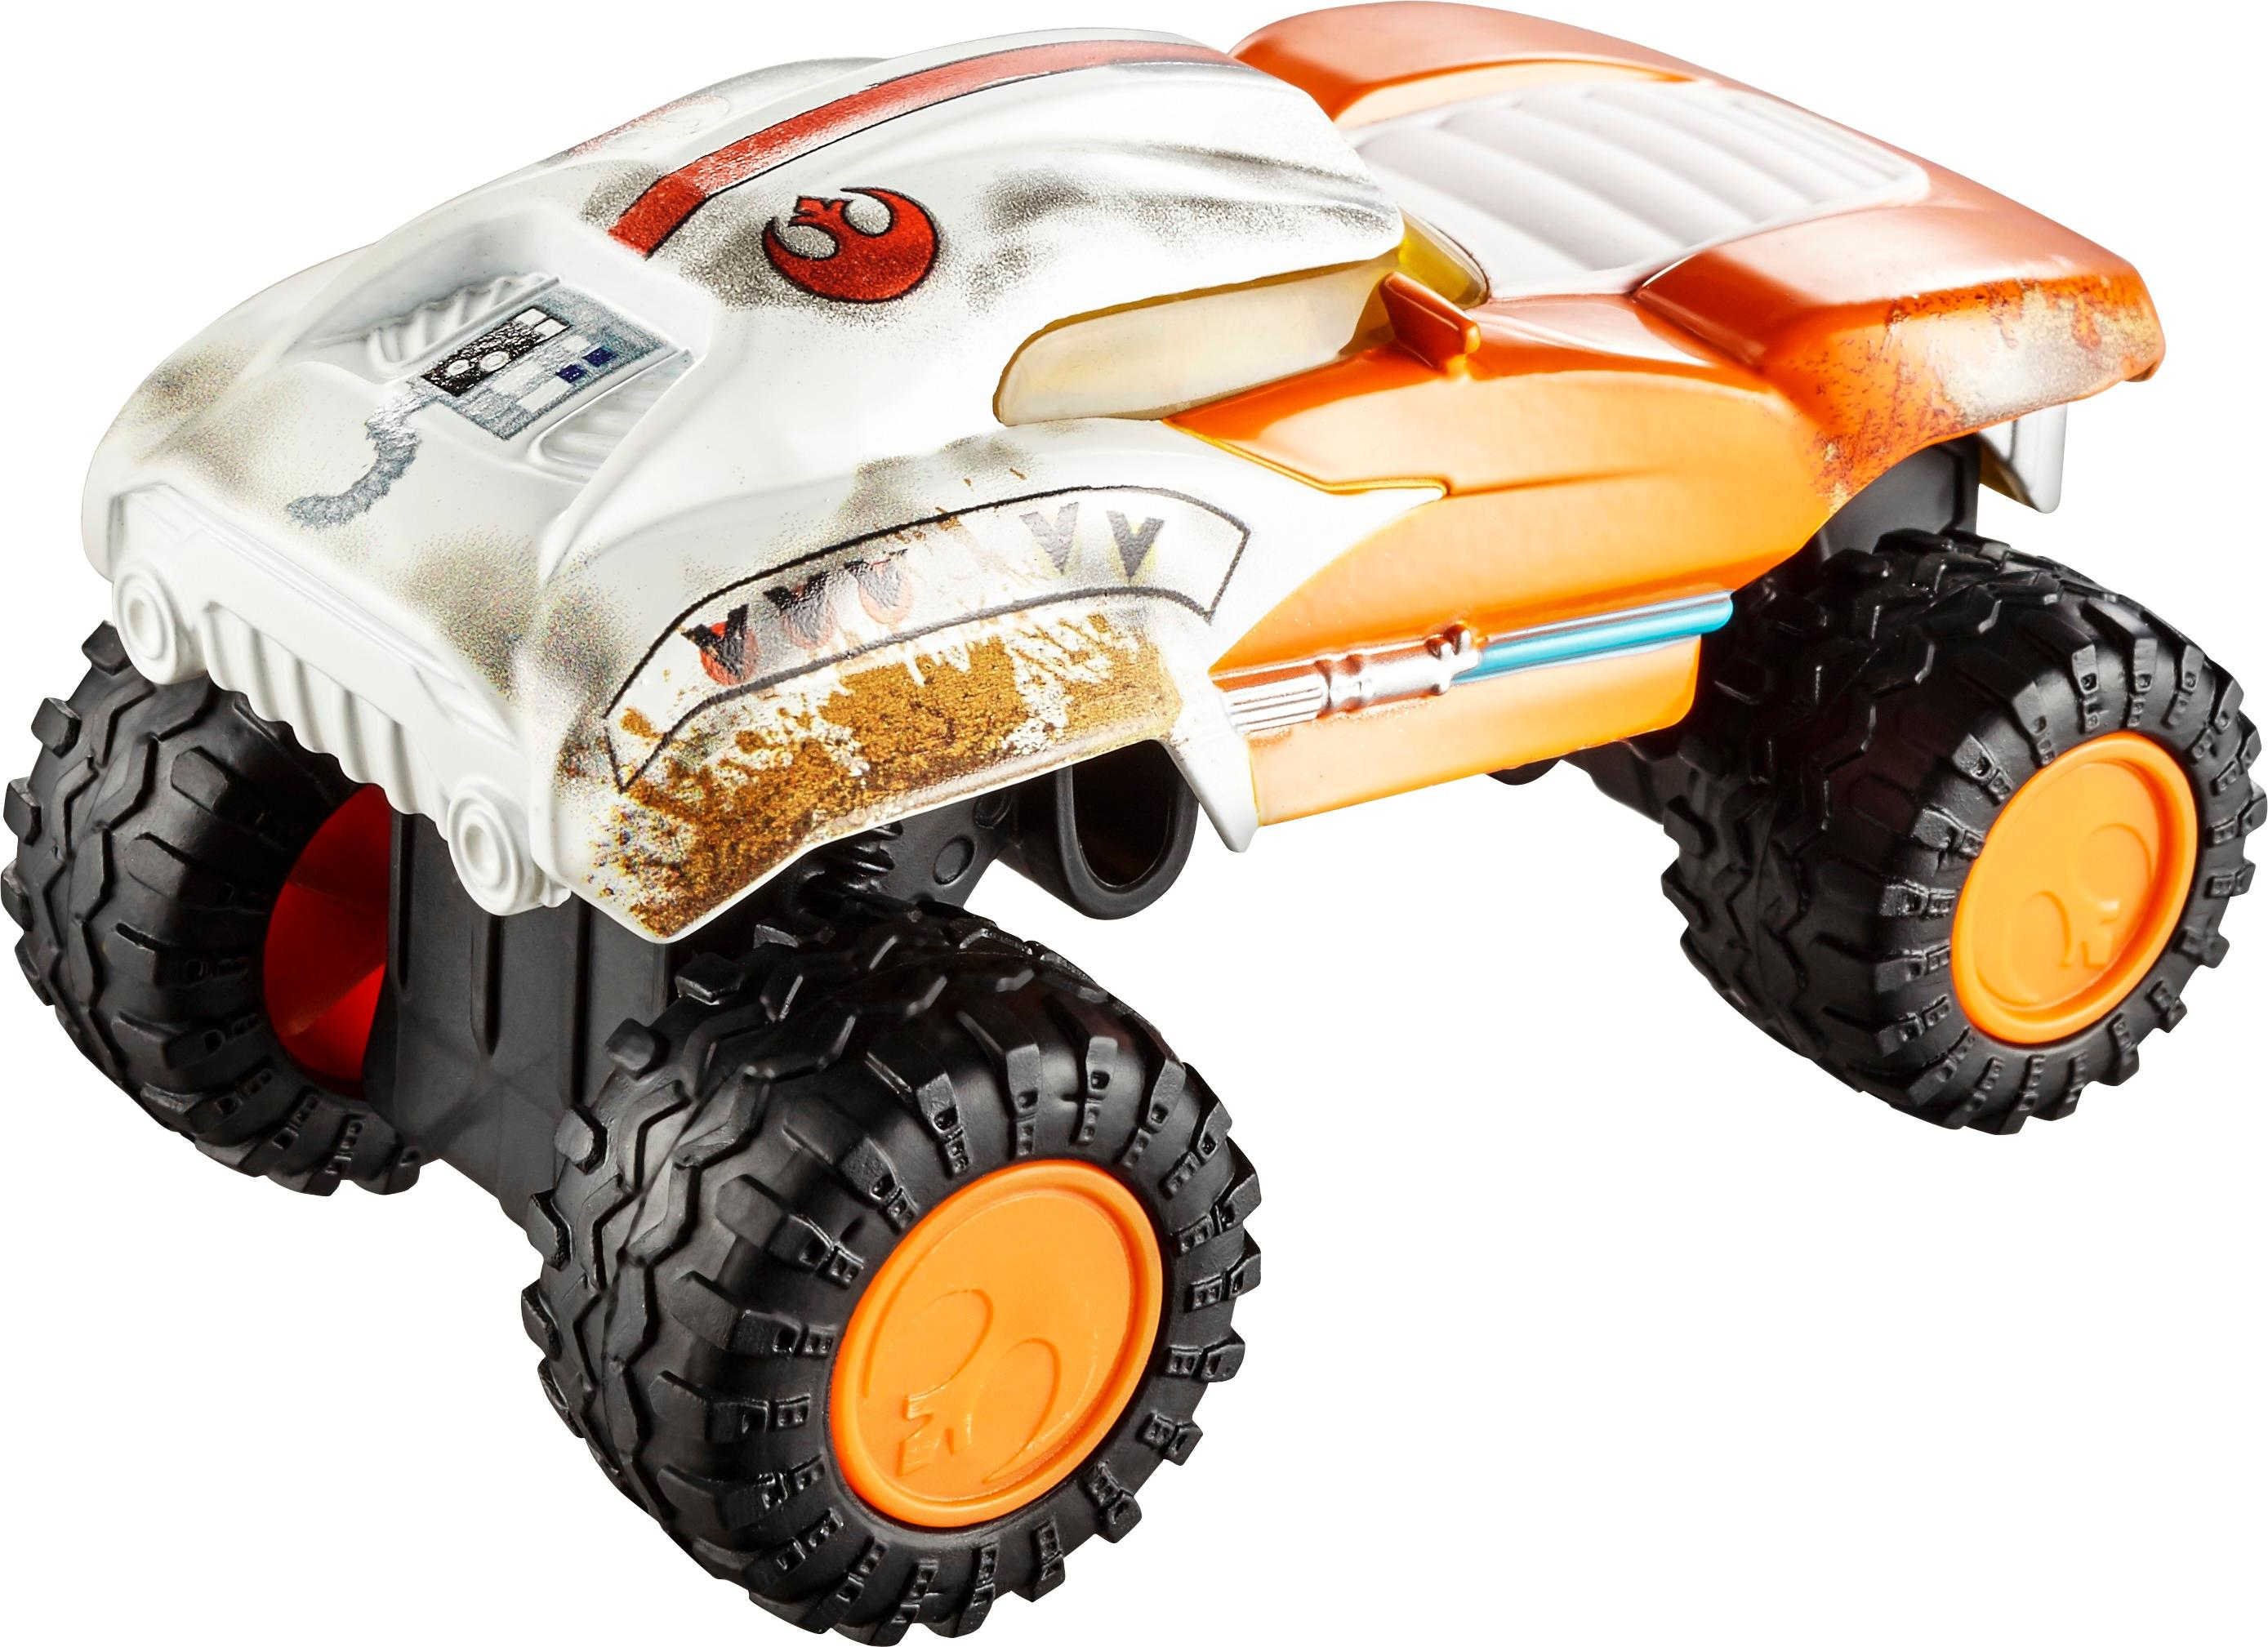 Mattel Hot Wheels Star Wars All Terrain Character Cars Vehicle Multi     Mattel   Hot Wheels     Star Wars       All Terrain Character Cars       Vehicle